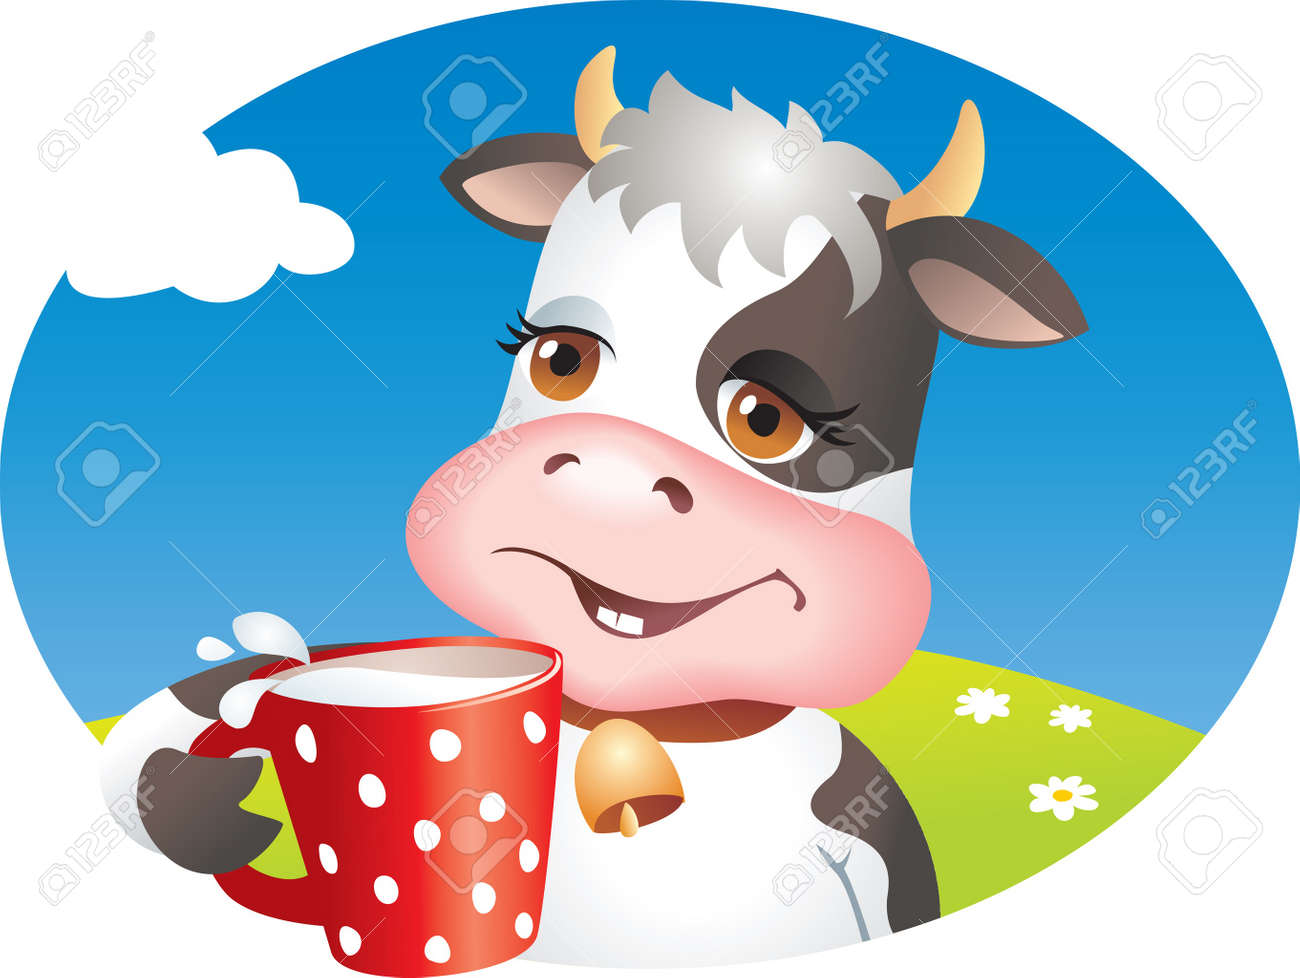 funny cartoon cow drinking cup of milk lawn flowers and sky